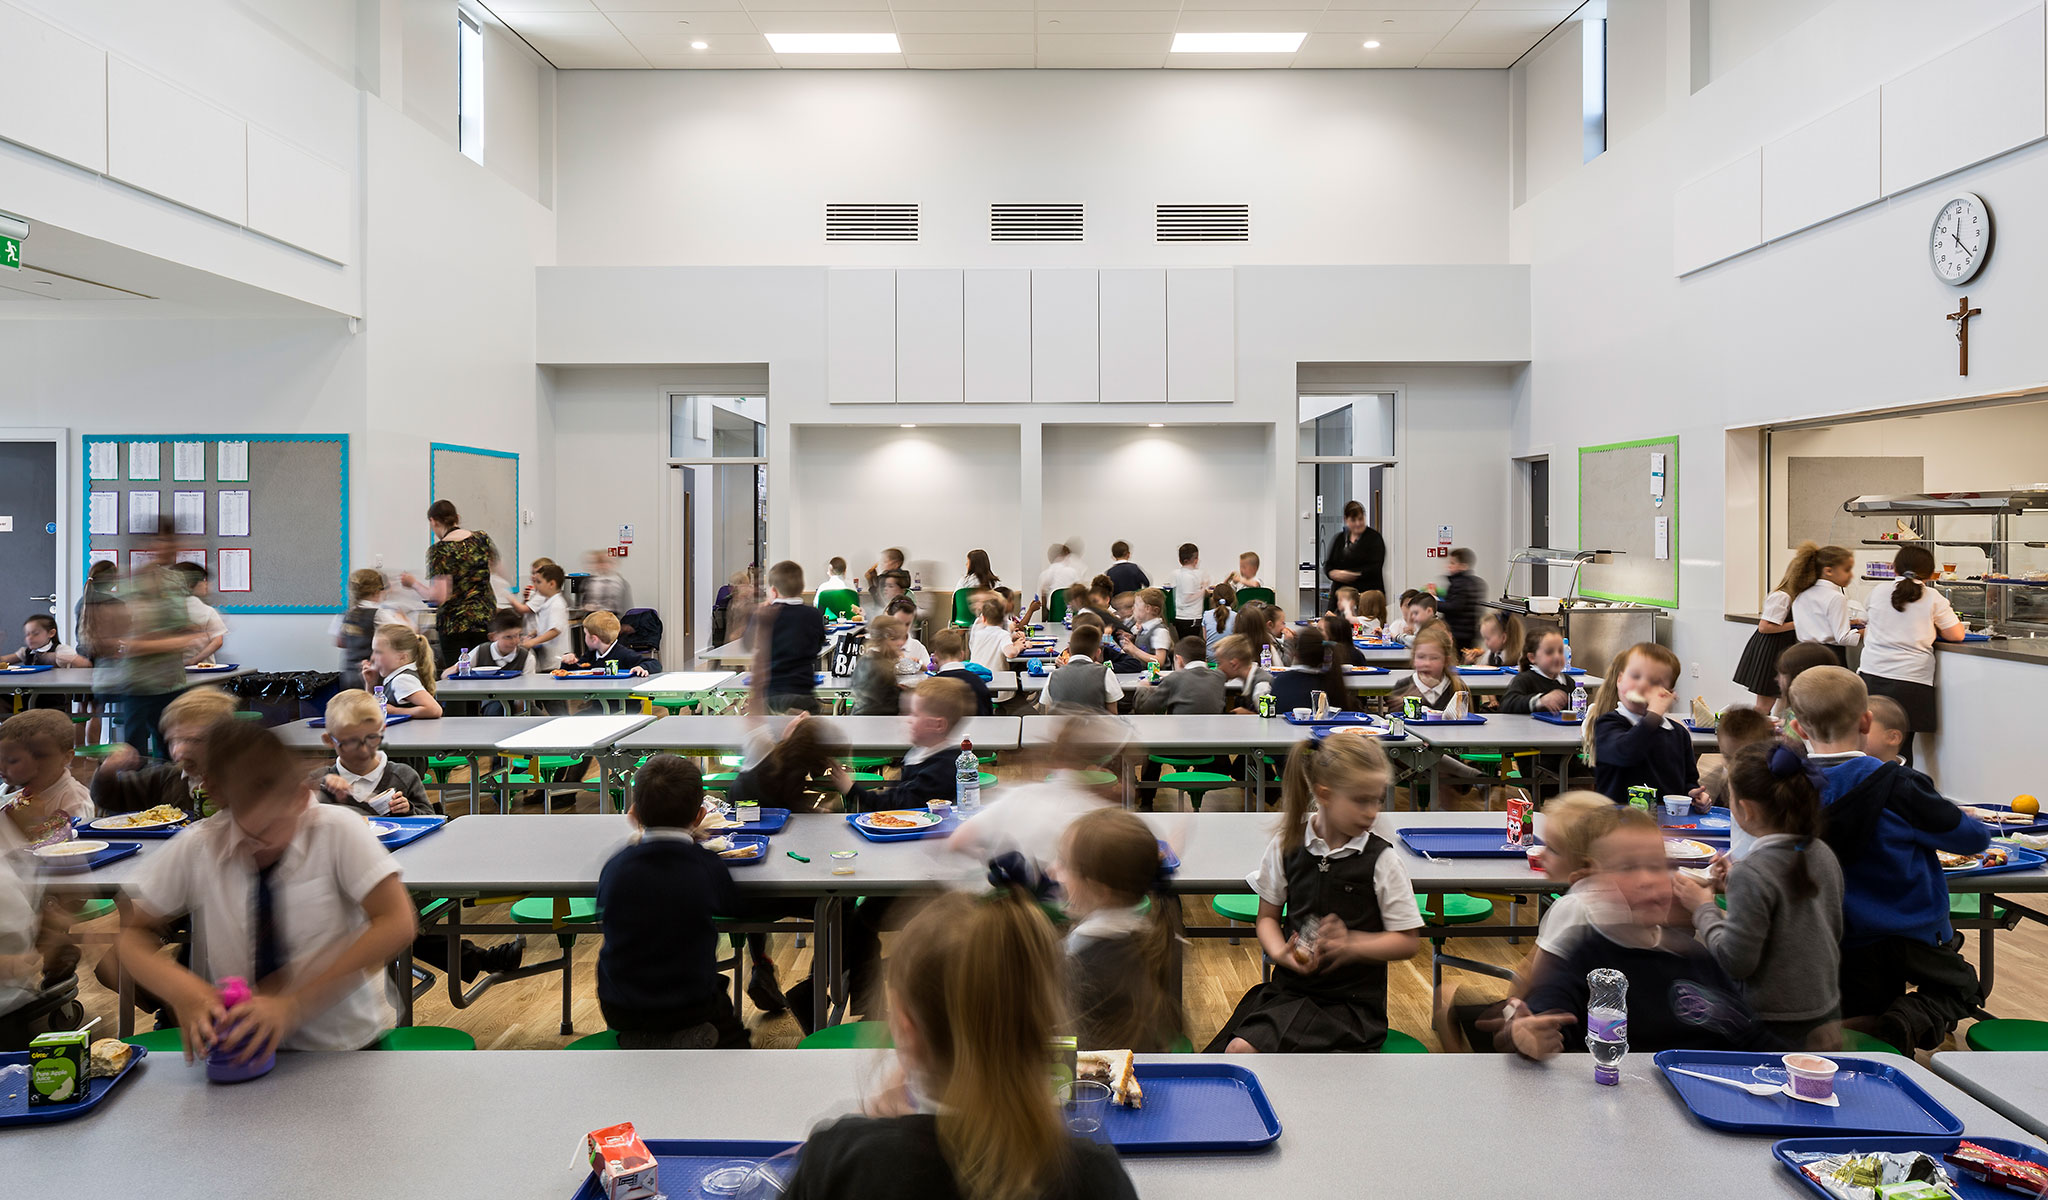 School cafeteria in UK